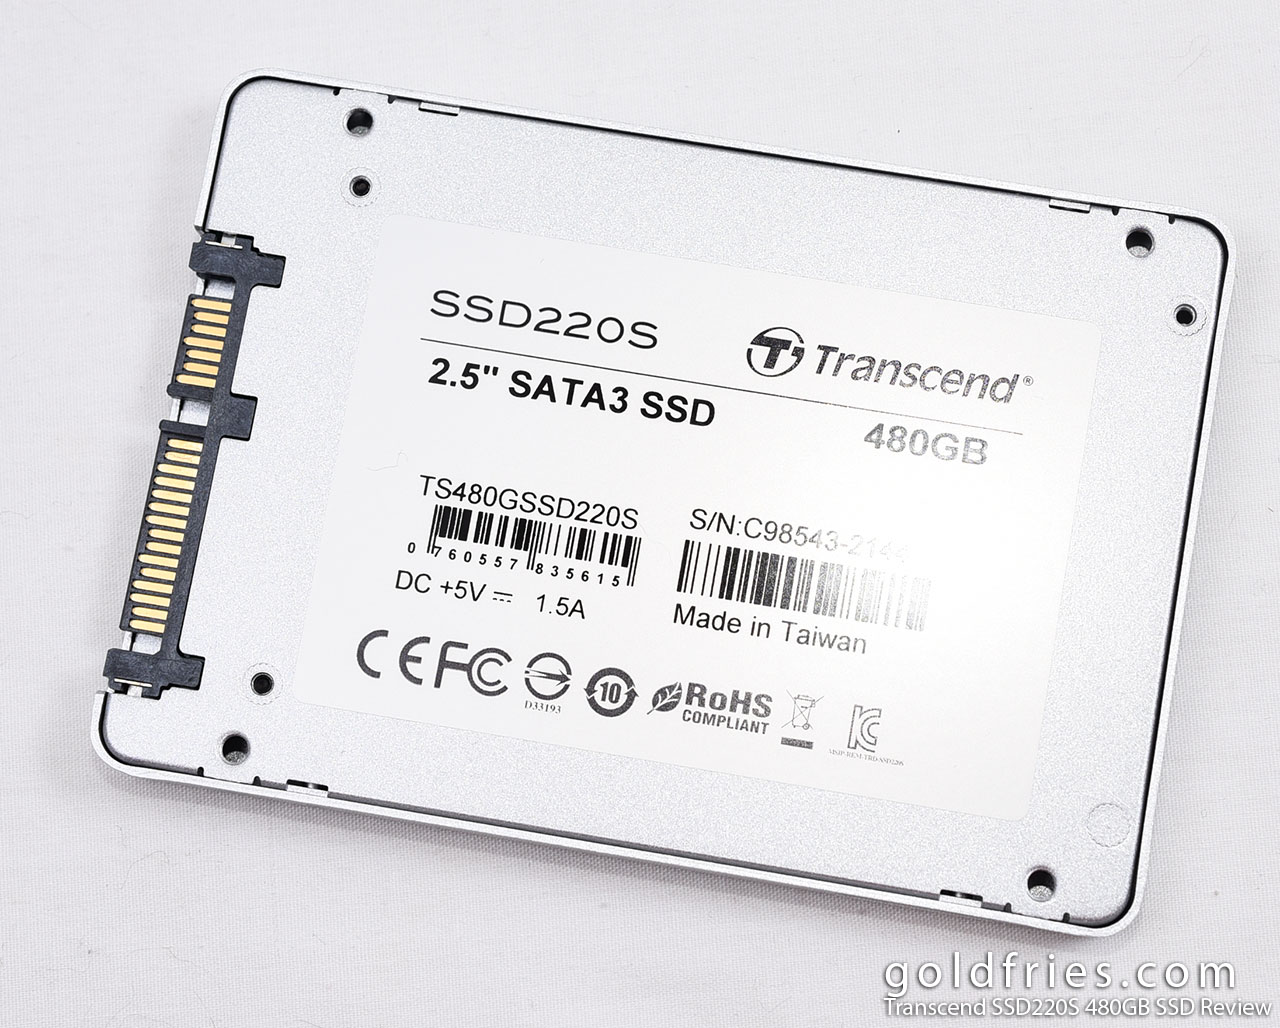 Transcend SSD220S 480GB SSD Review